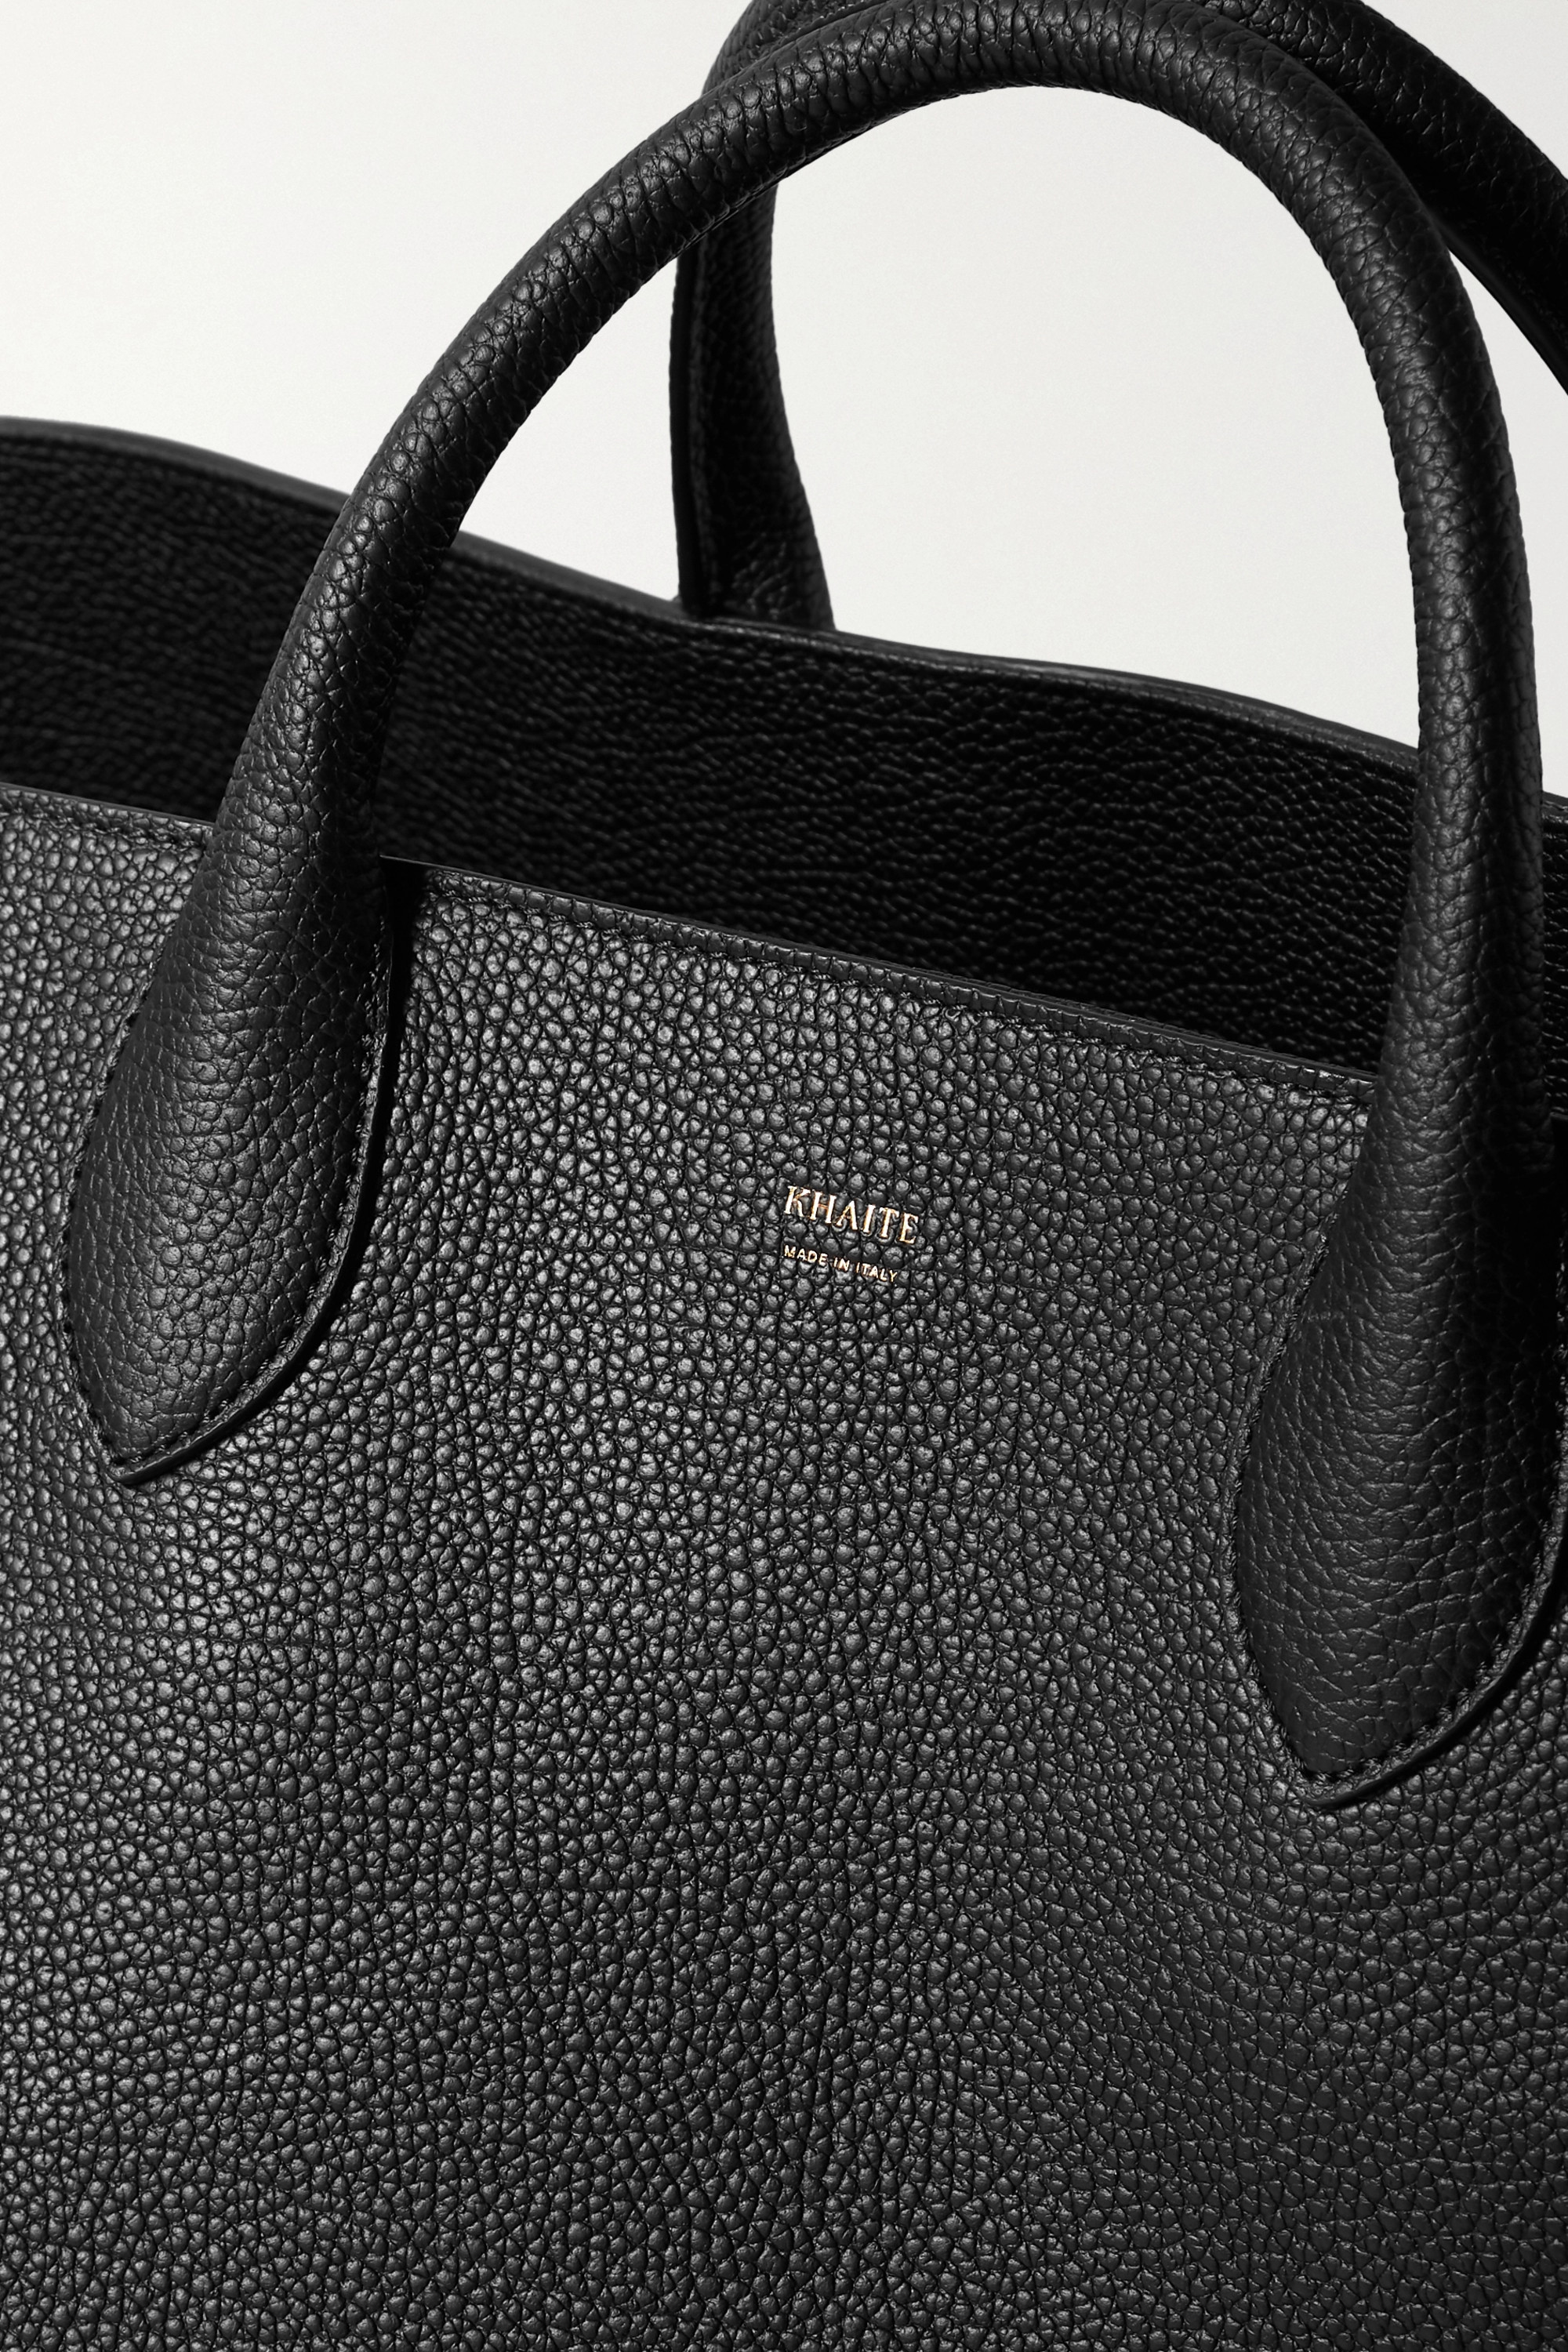 Khaite Envelope Pleat large textured-leather tote